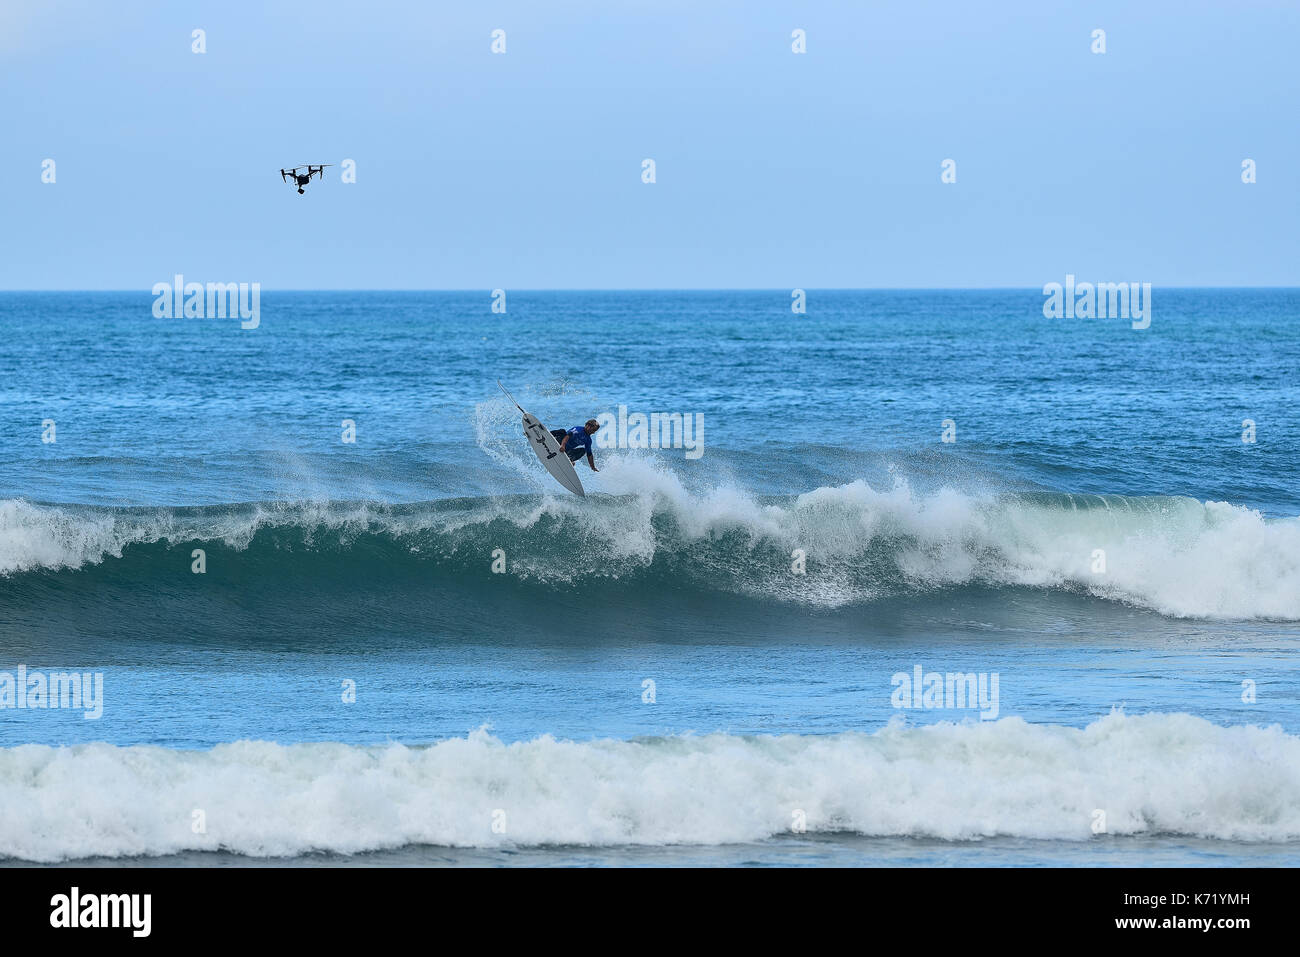 San Clemente, USA. 13 September, 2017.  Surfers compete head to head during the 2017 Hurley Pro surf contest at Lower Trestles, San Onofre State Park, CA. Surfer: Josh Kerr (AUS). Credit: Benjamin Ginsberg/Alamy Live News. - Stock Image